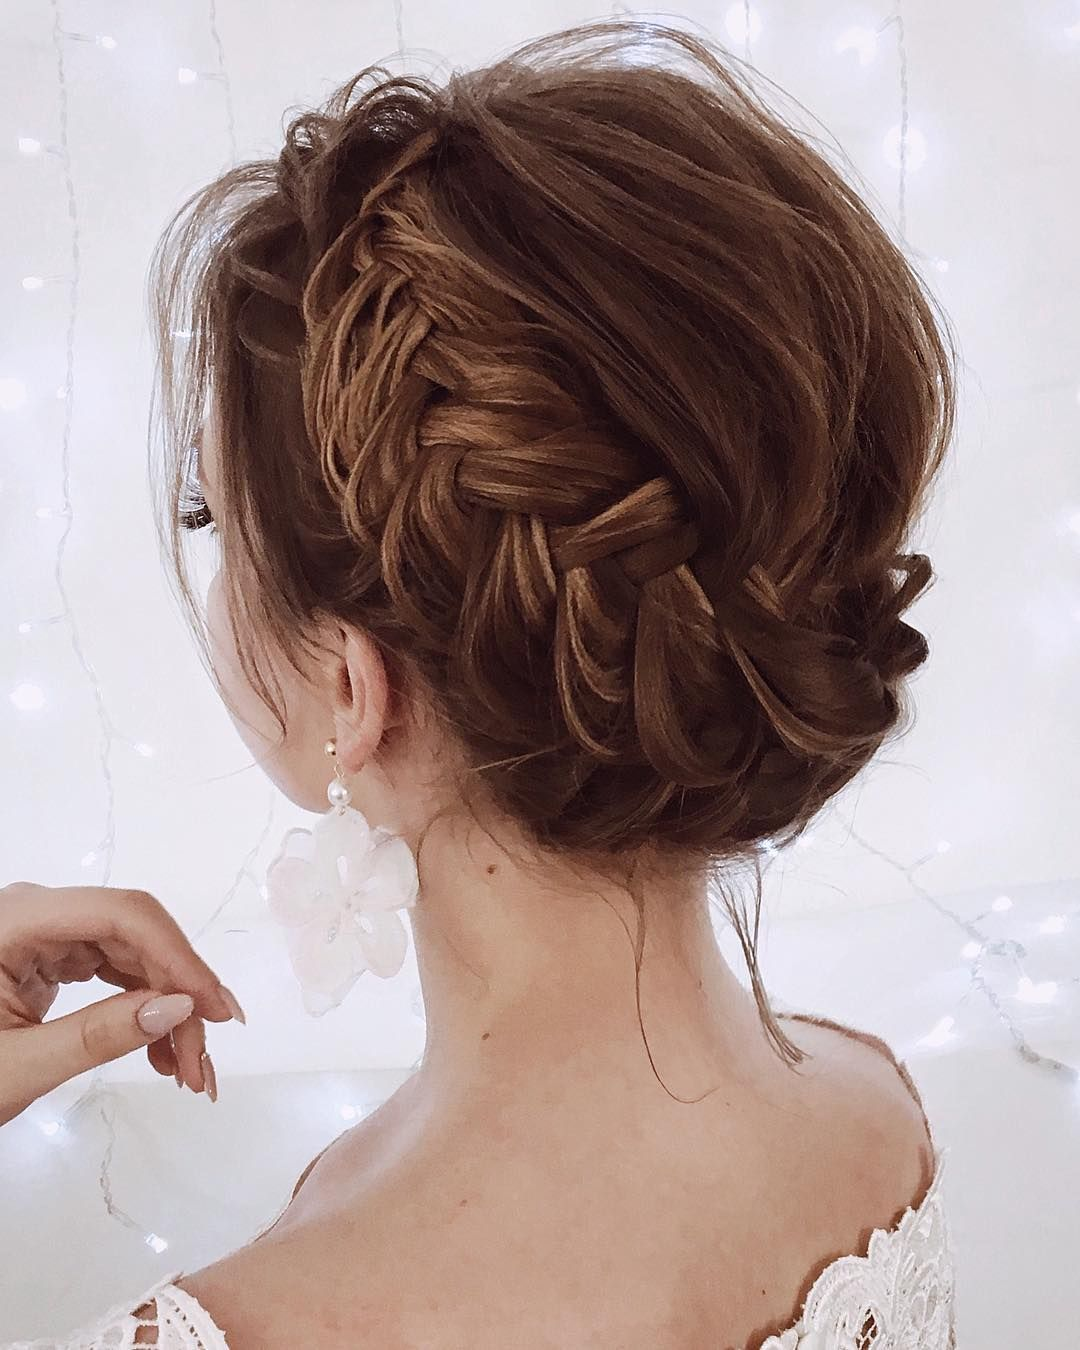 Unique Updo Hairstyle High Bun Hairstyle Prom Hairstyles Wedding Hairstyle Ideas Wedding Weddi Hair Styles Elegant Wedding Hair Unique Wedding Hairstyles